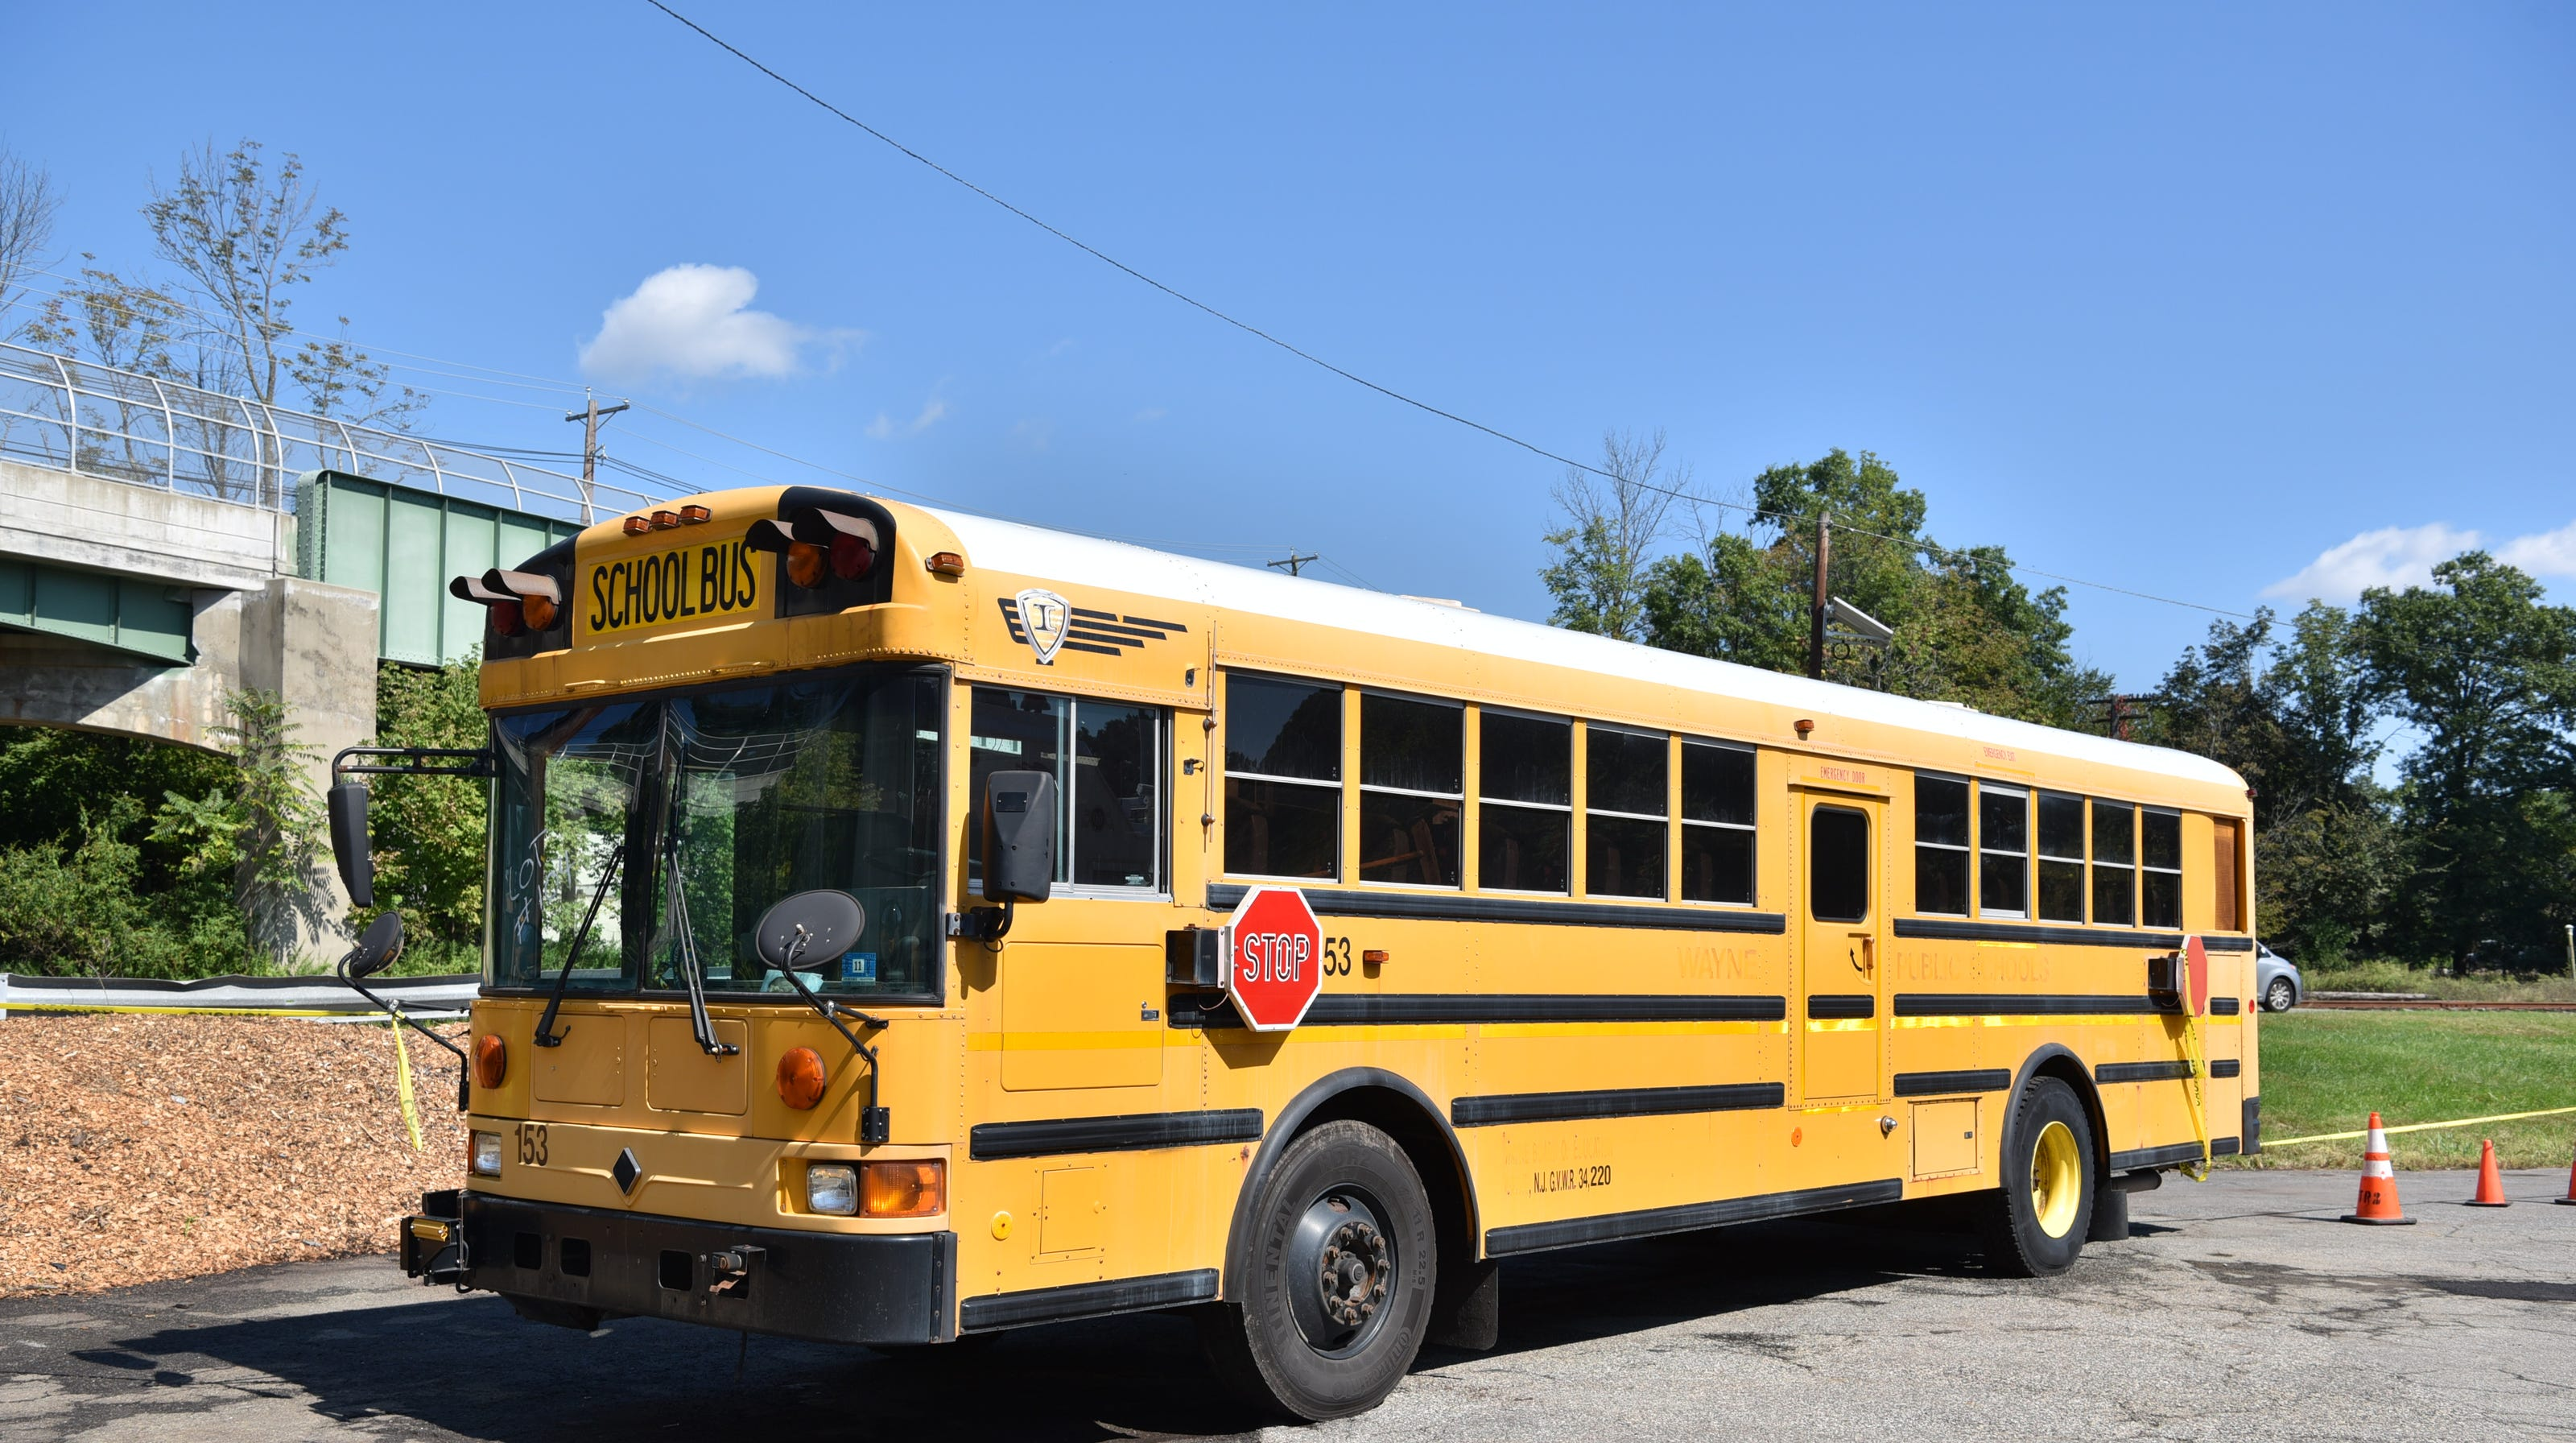 Paterson Nj Strips 4 School Bus Routes From Company Over Delays